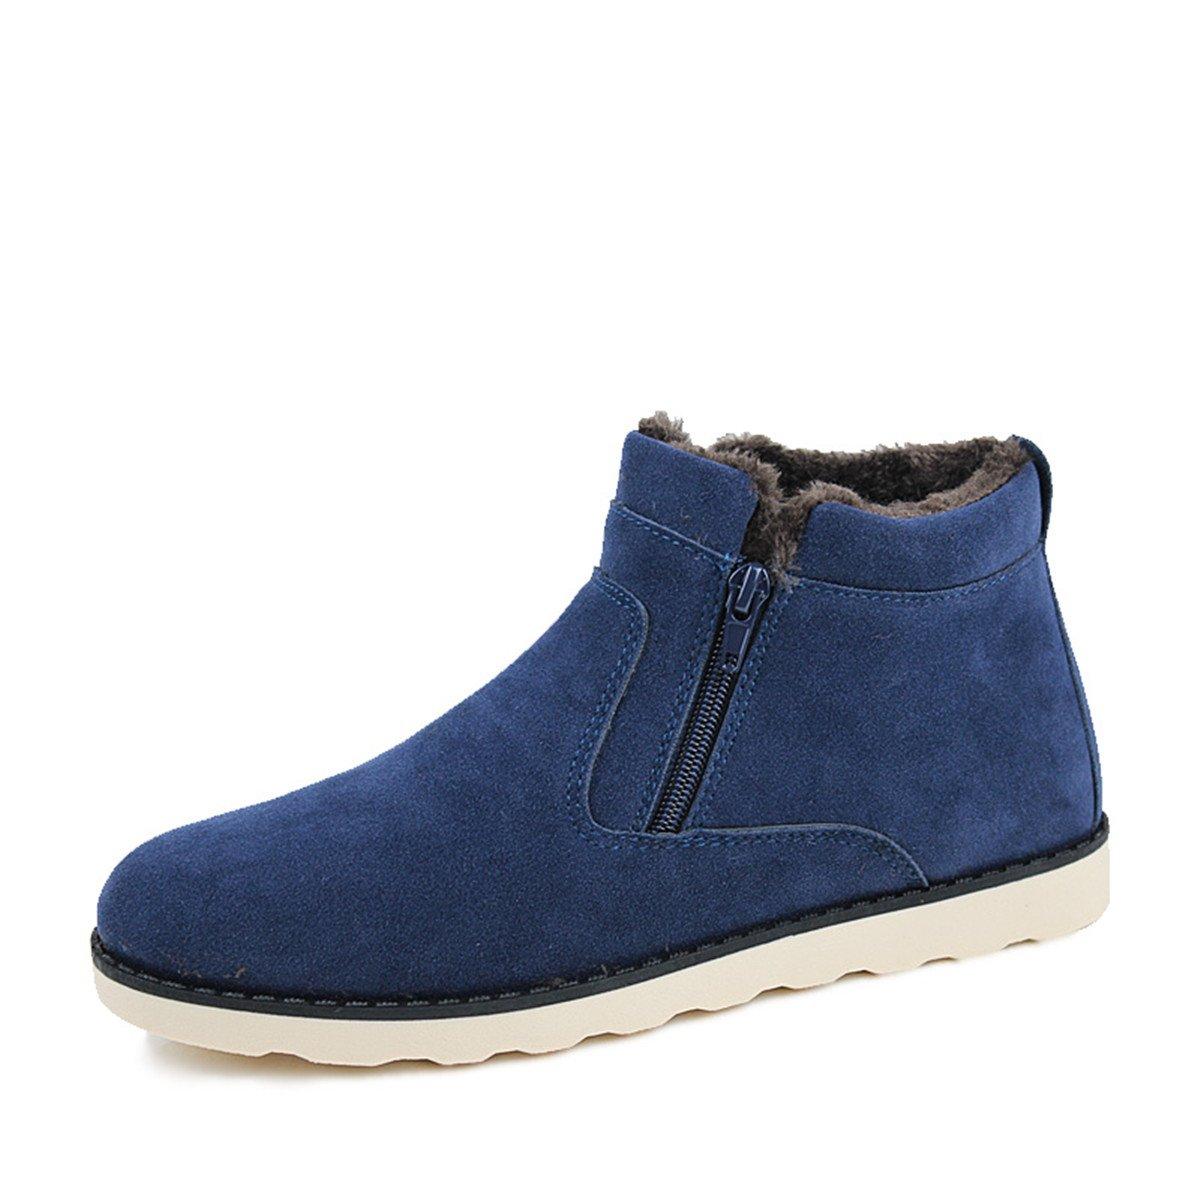 A-cool Men's Winter Fur Lined Snow Boot Side Zipper Ankle Keep Warm Cotton Shoes